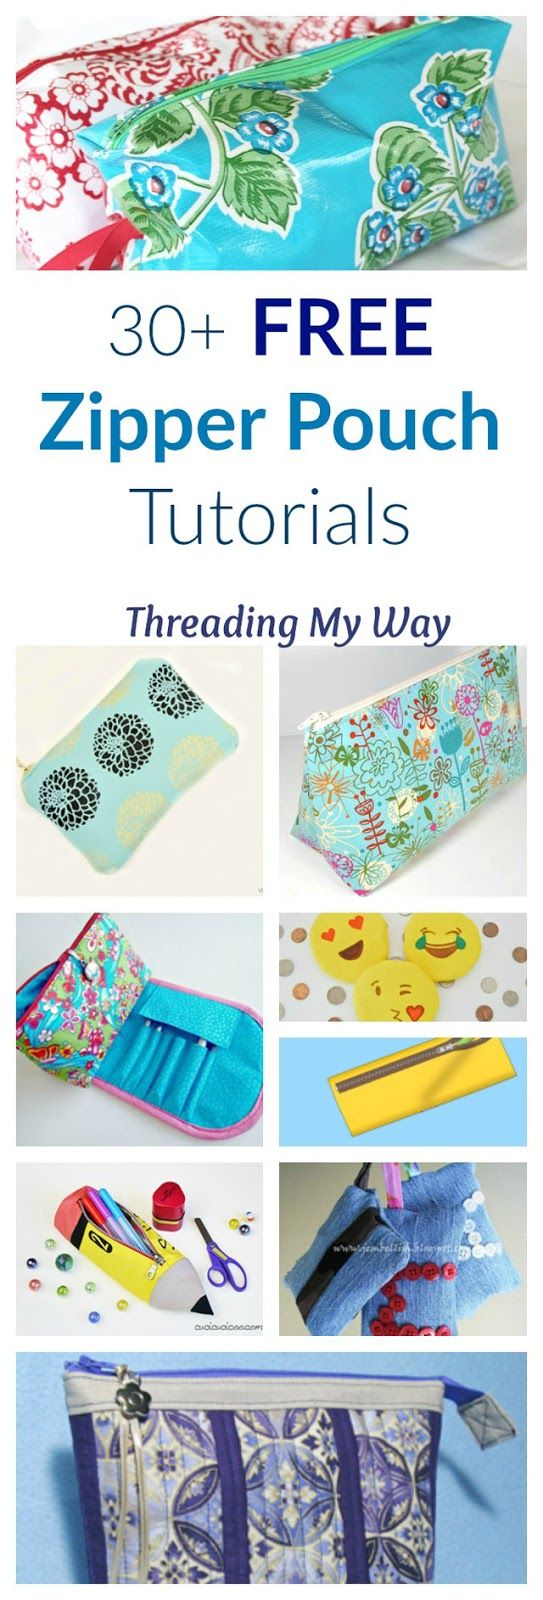 30+ free zipper pouch tutorials - makeup bags, lingerie bags, toiletry bags, pencil cases, coin purses, keychains ~ Threading My Way